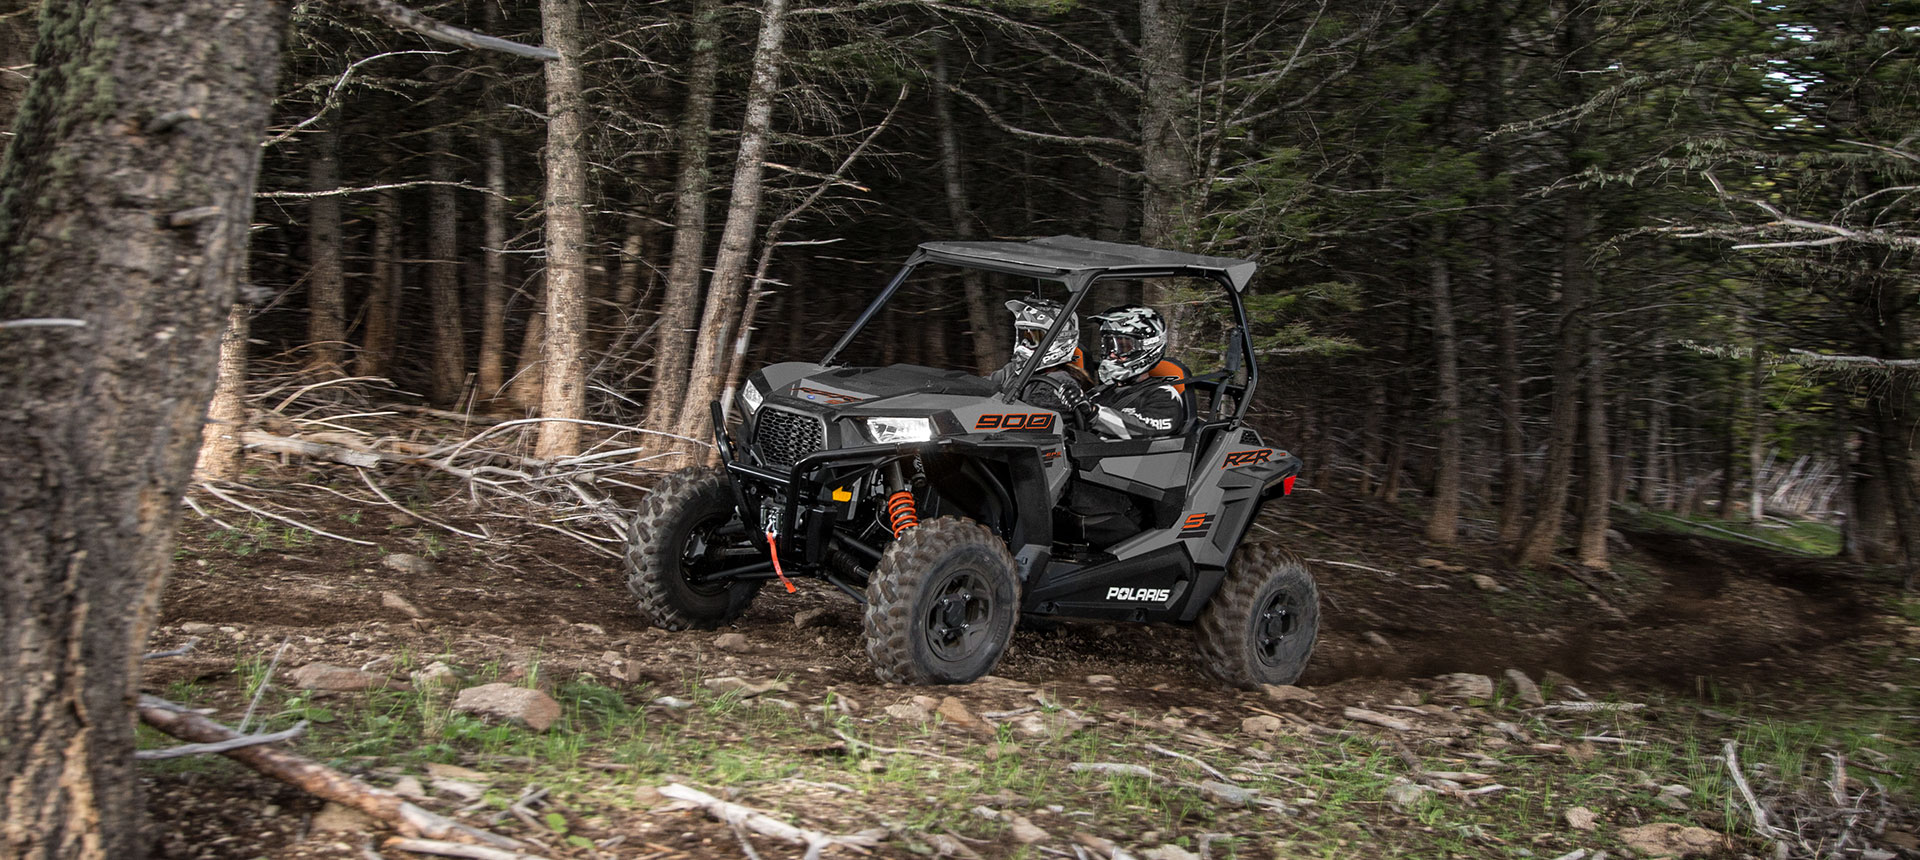 2019 Polaris RZR S 900 in Philadelphia, Pennsylvania - Photo 9